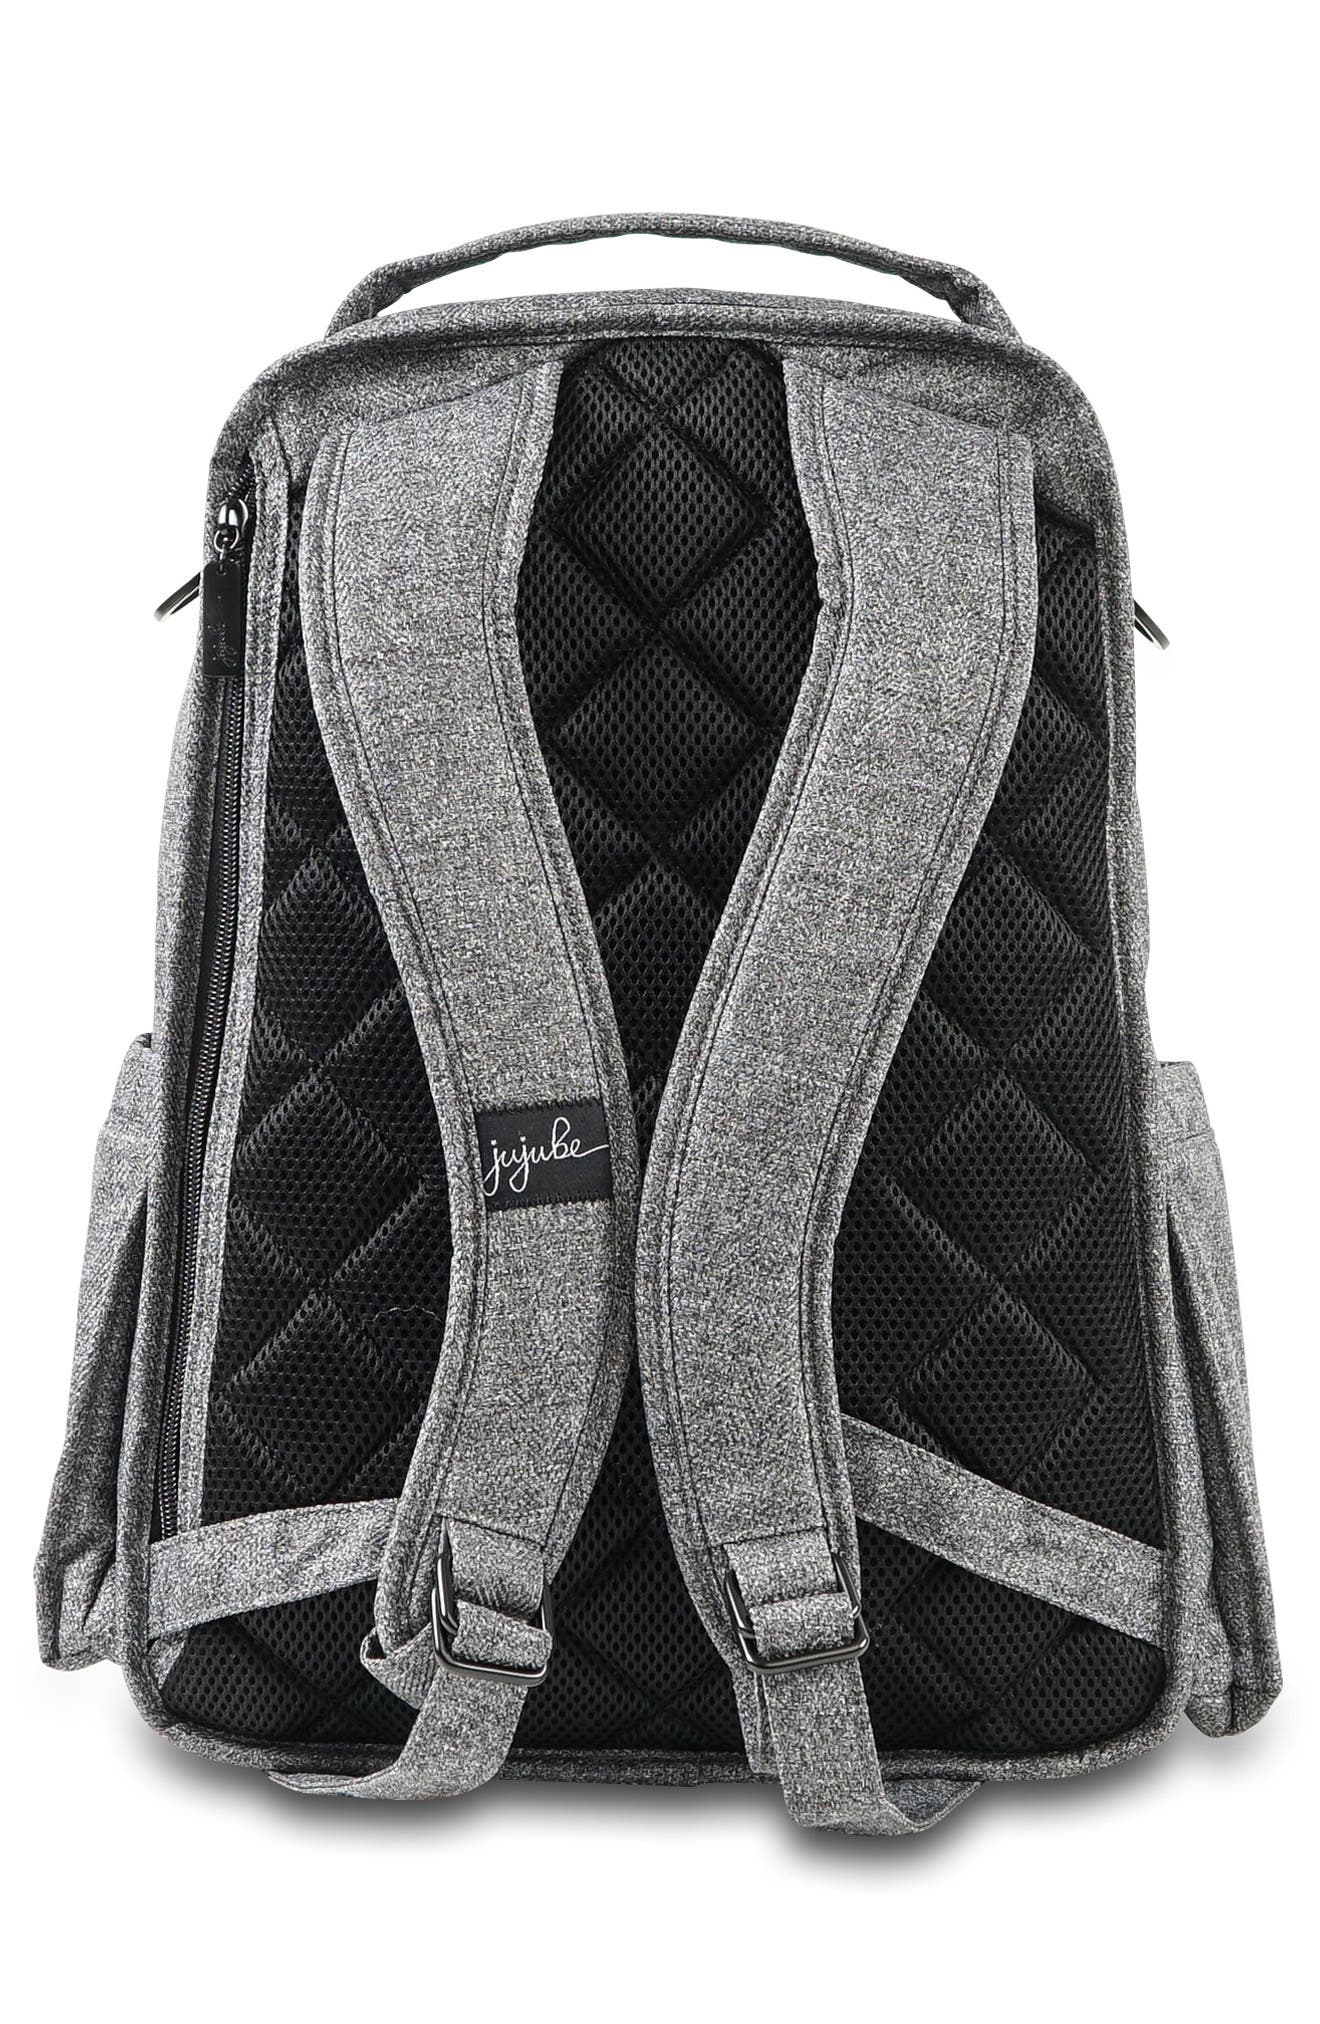 'Be Right Back - Onyx Collection' Diaper Backpack,                             Alternate thumbnail 2, color,                             GRAY MATTER